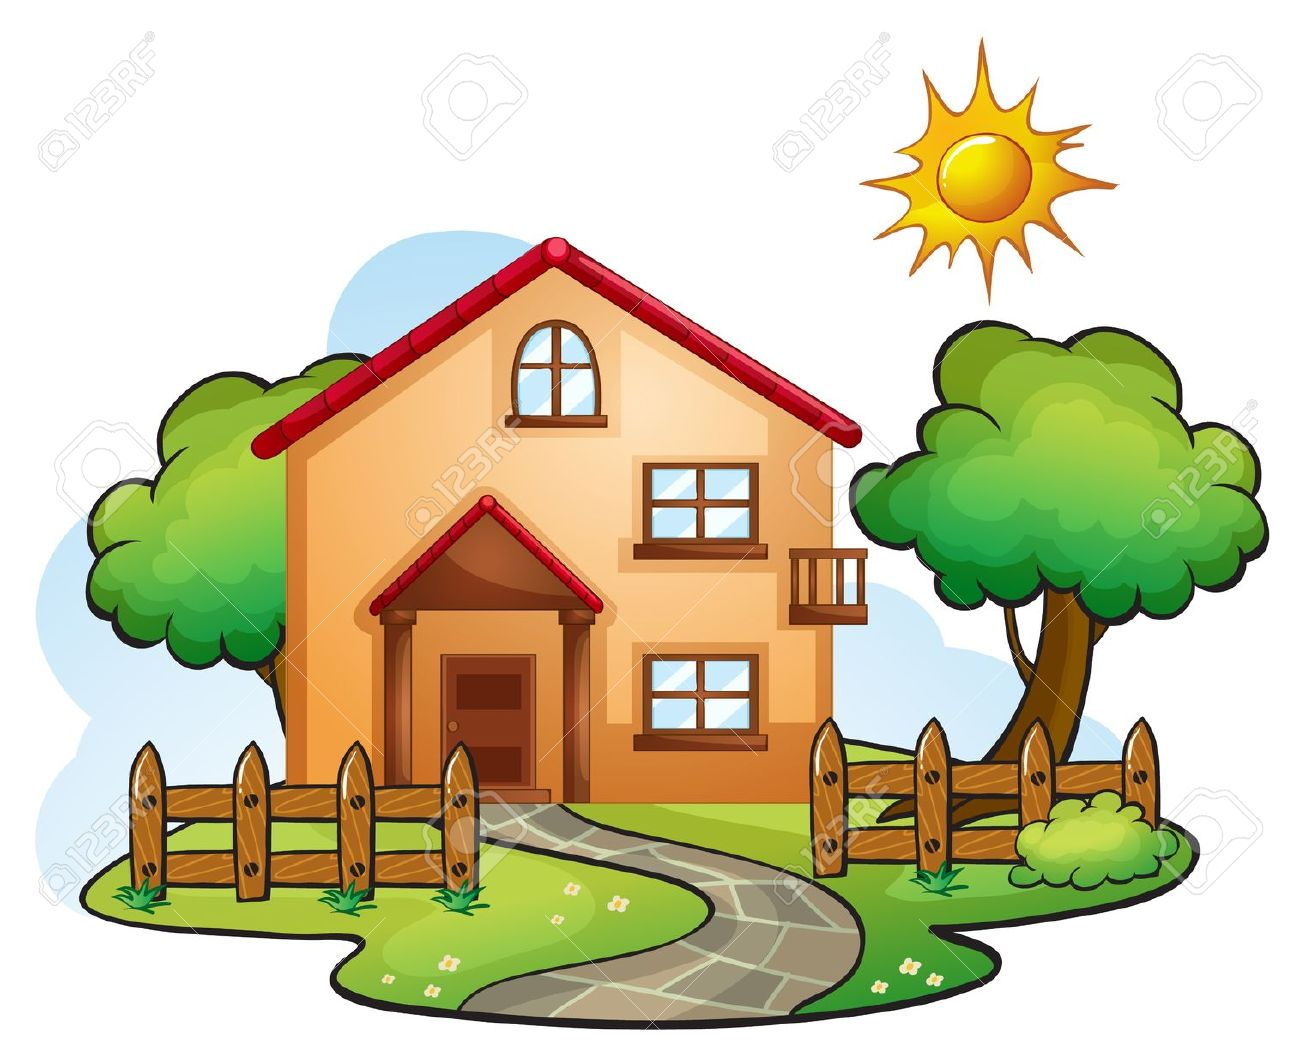 Beautiful house clipart - Clipground